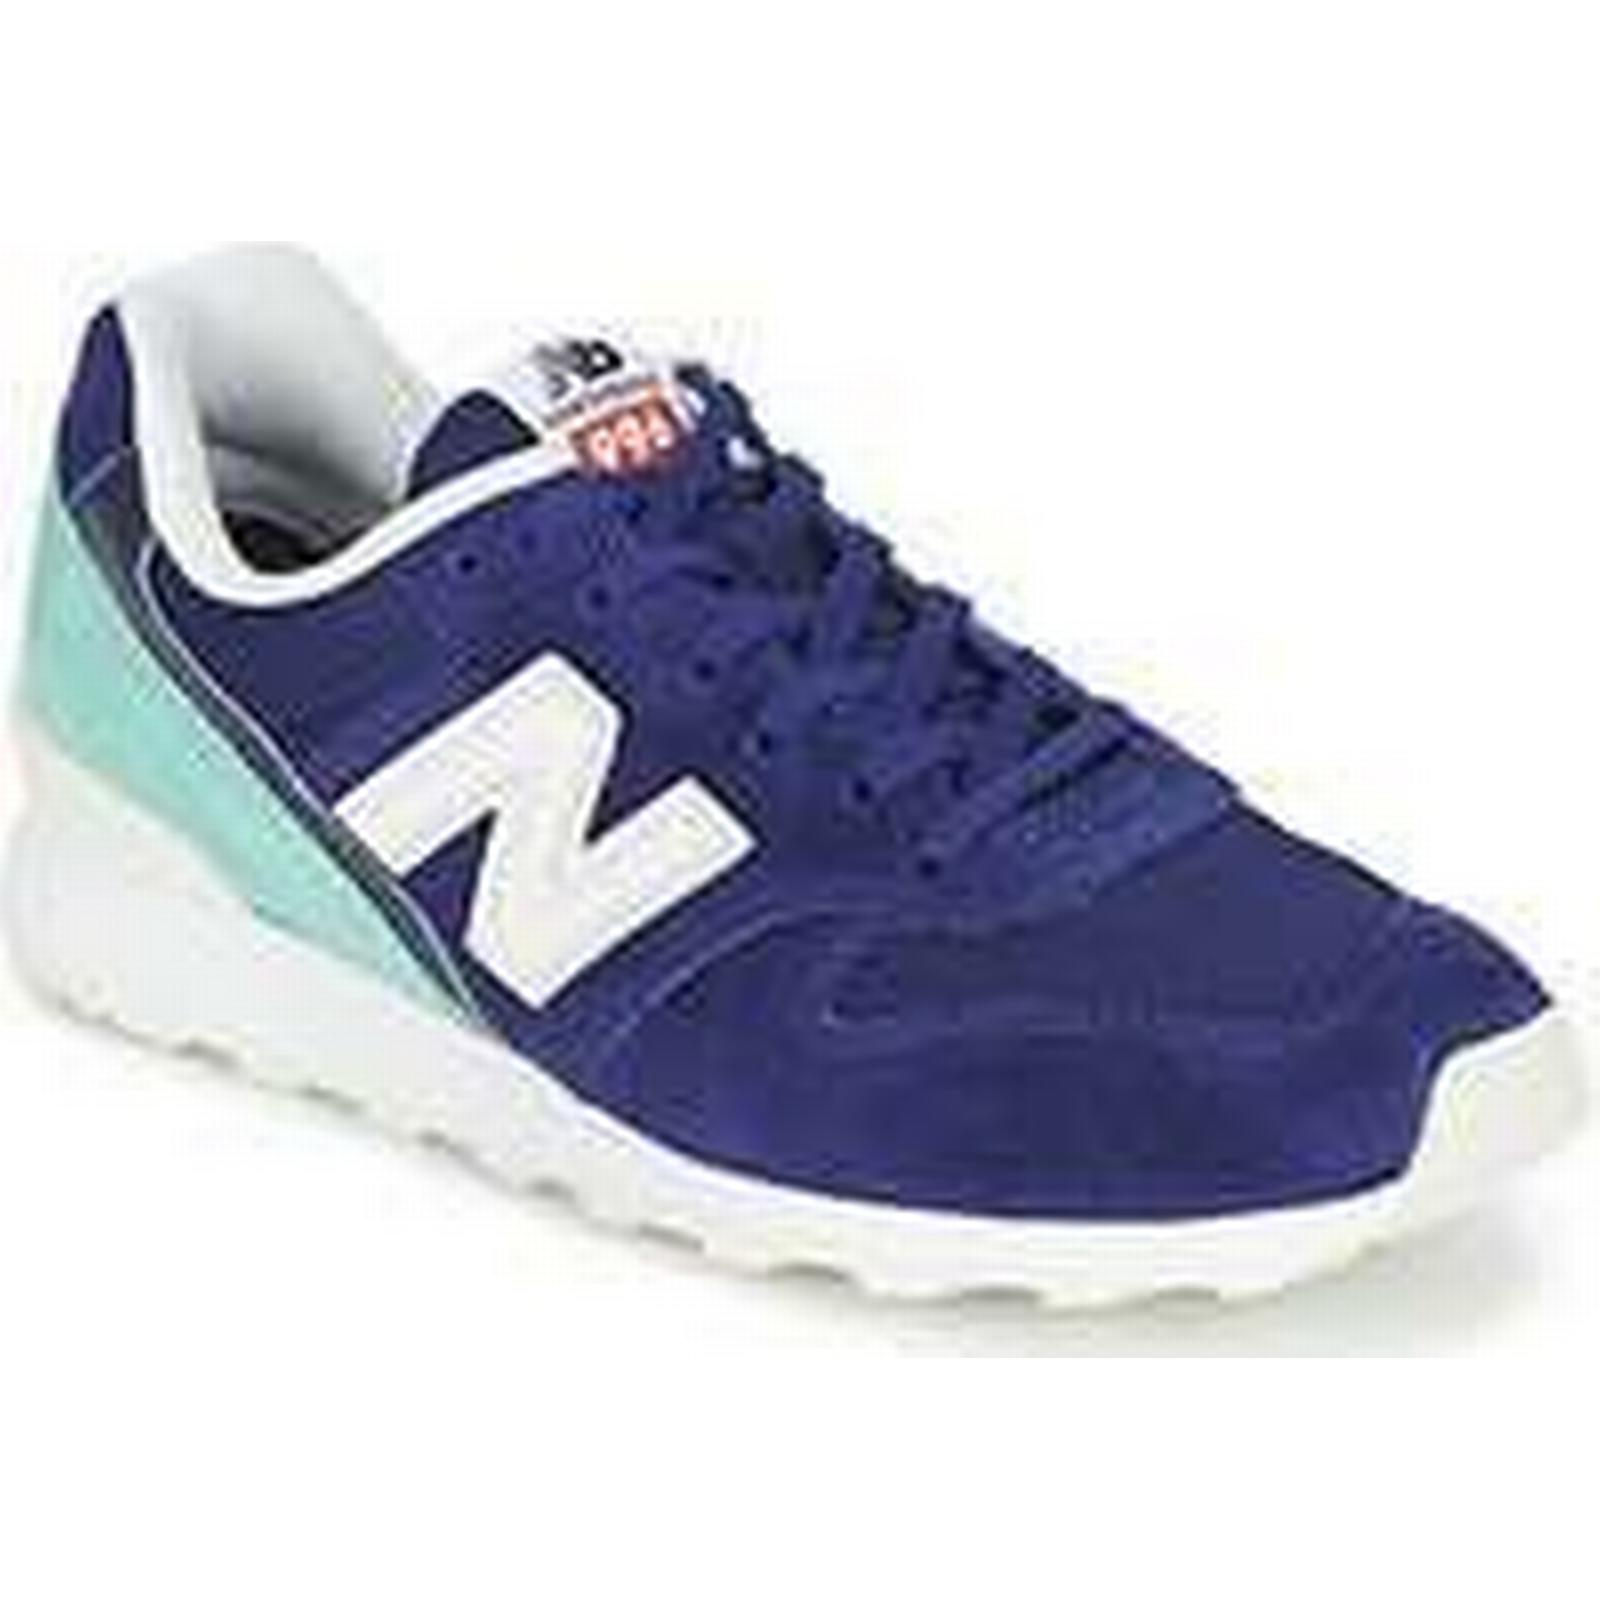 Spartoo.co.uk New Balance in WR996 women's Shoes (Trainers) in Balance Blue e2aab6